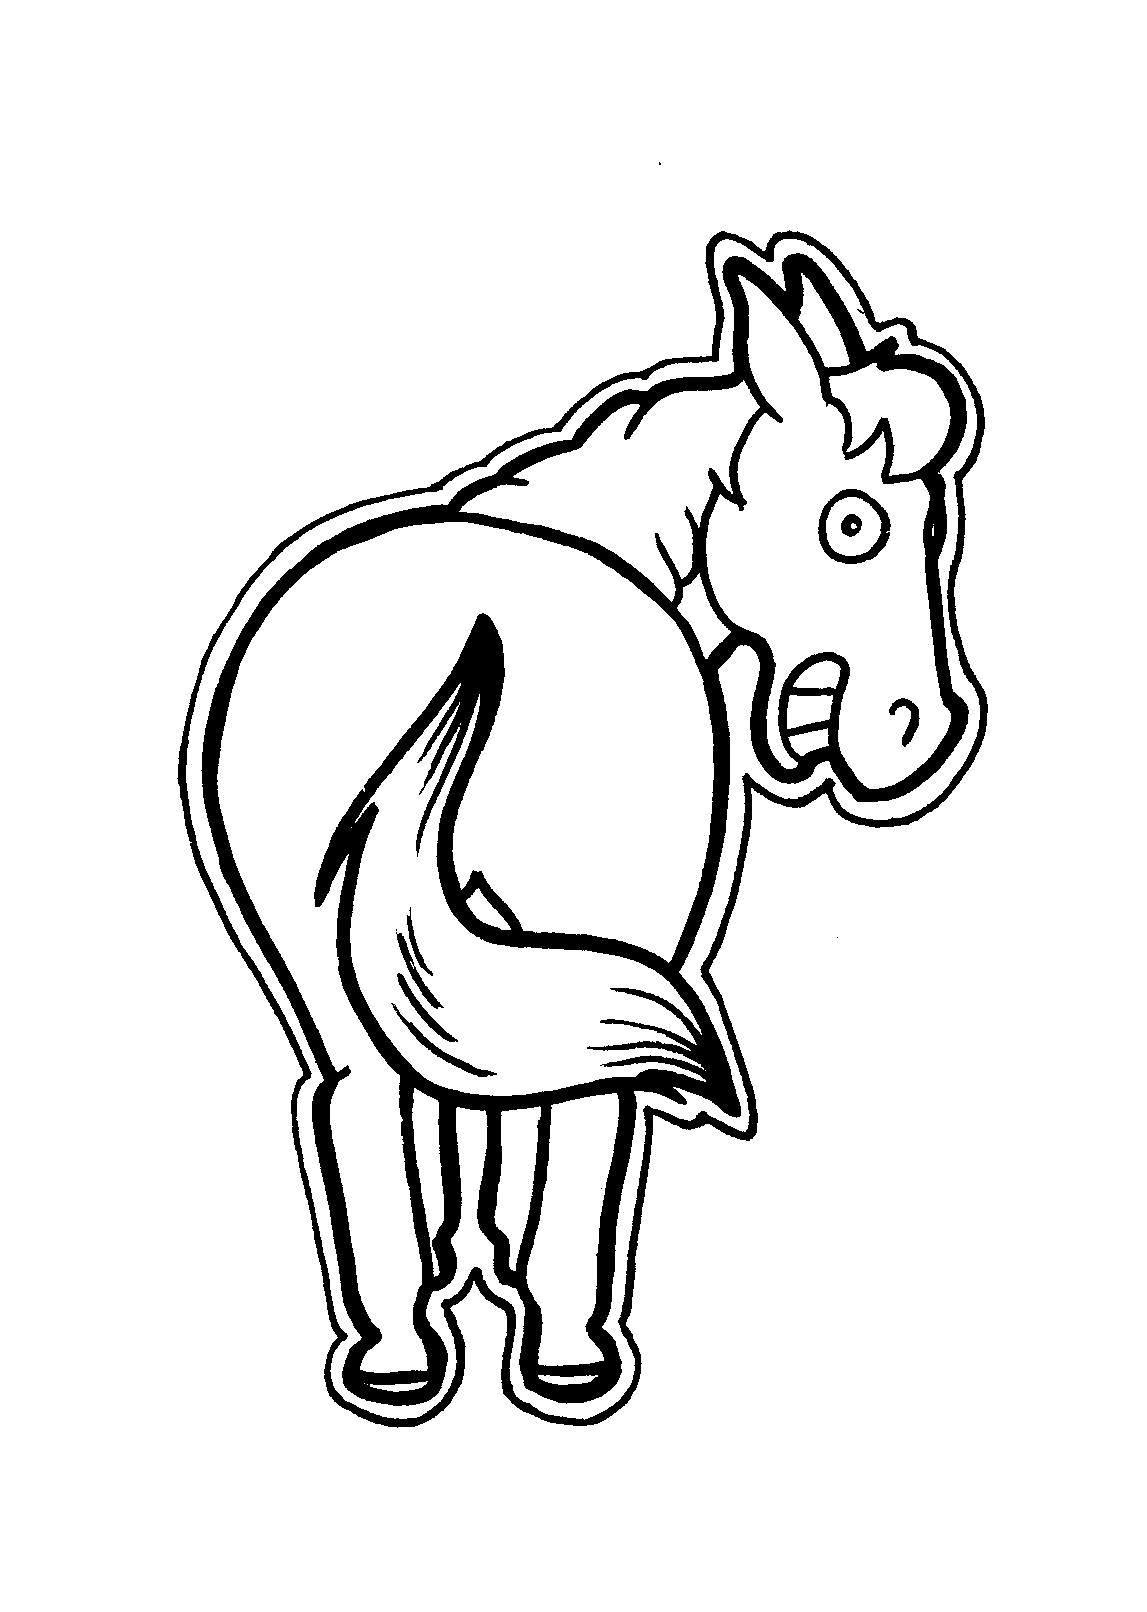 Free coloring pages of lightning bolt for Lightning bolt coloring page